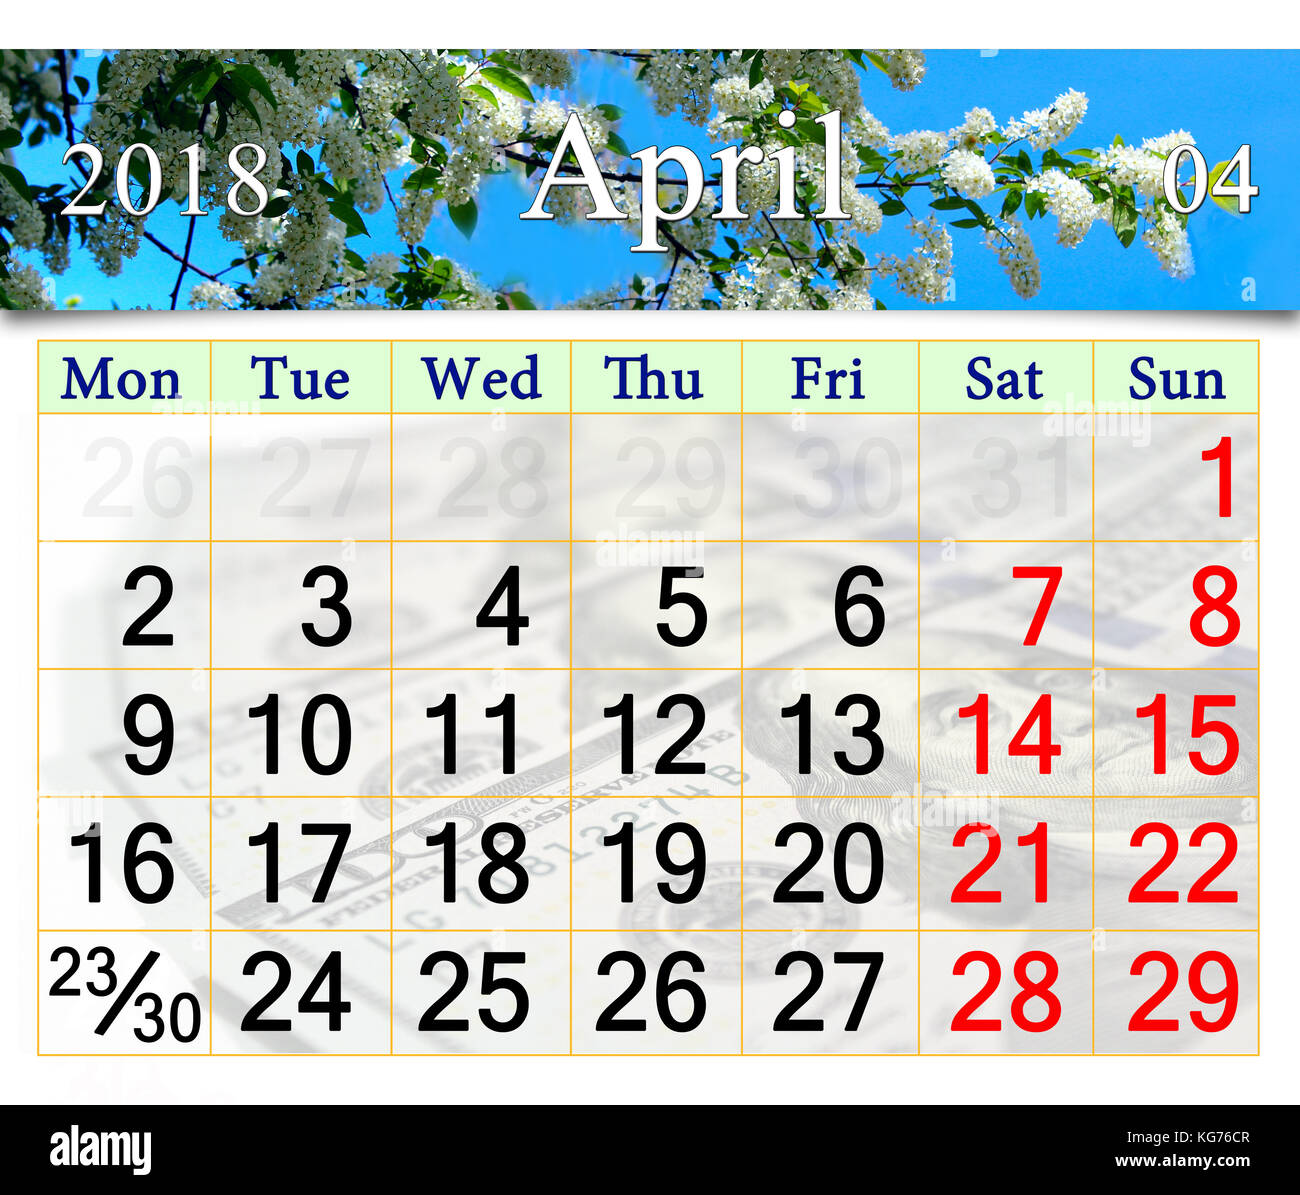 calendar for april 2018 on the background of spring bird cherry tree